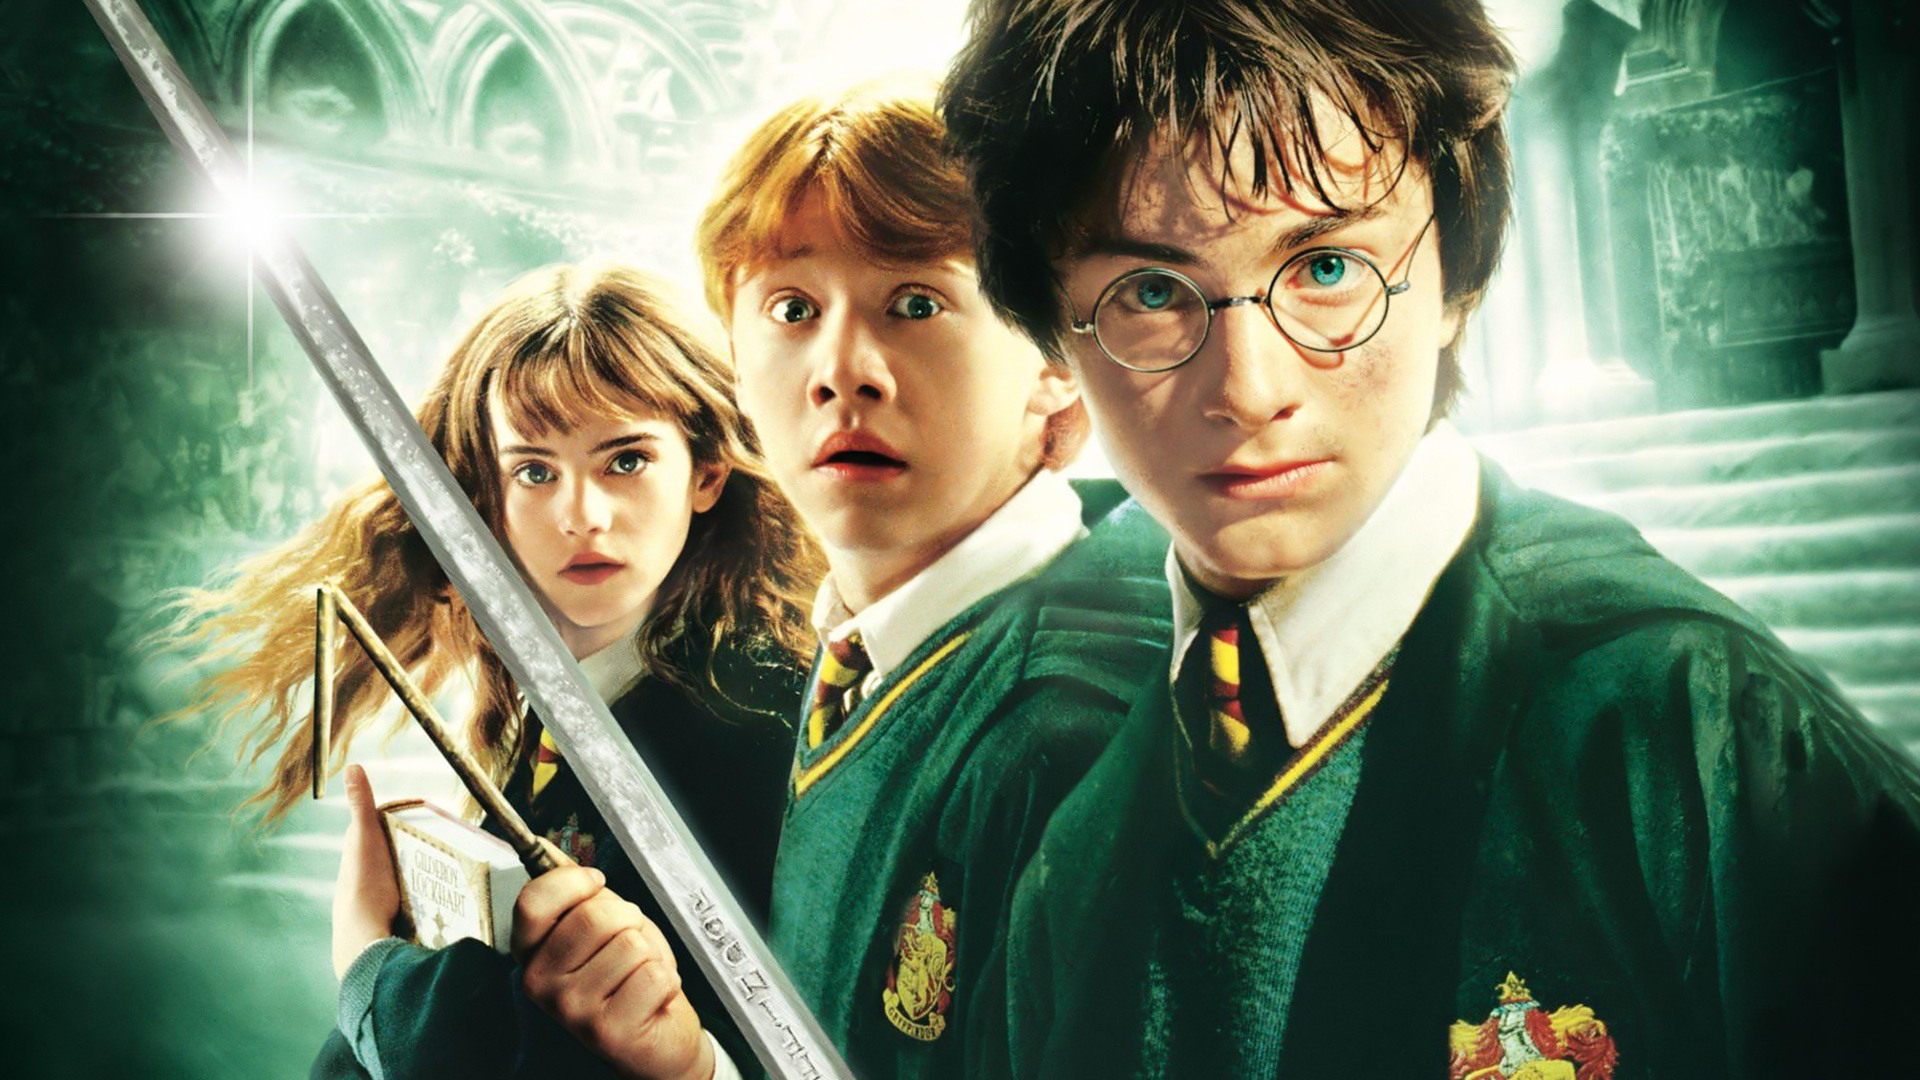 Harry Potter And The Chamber Of Secrets Fondo De Pantalla Hd